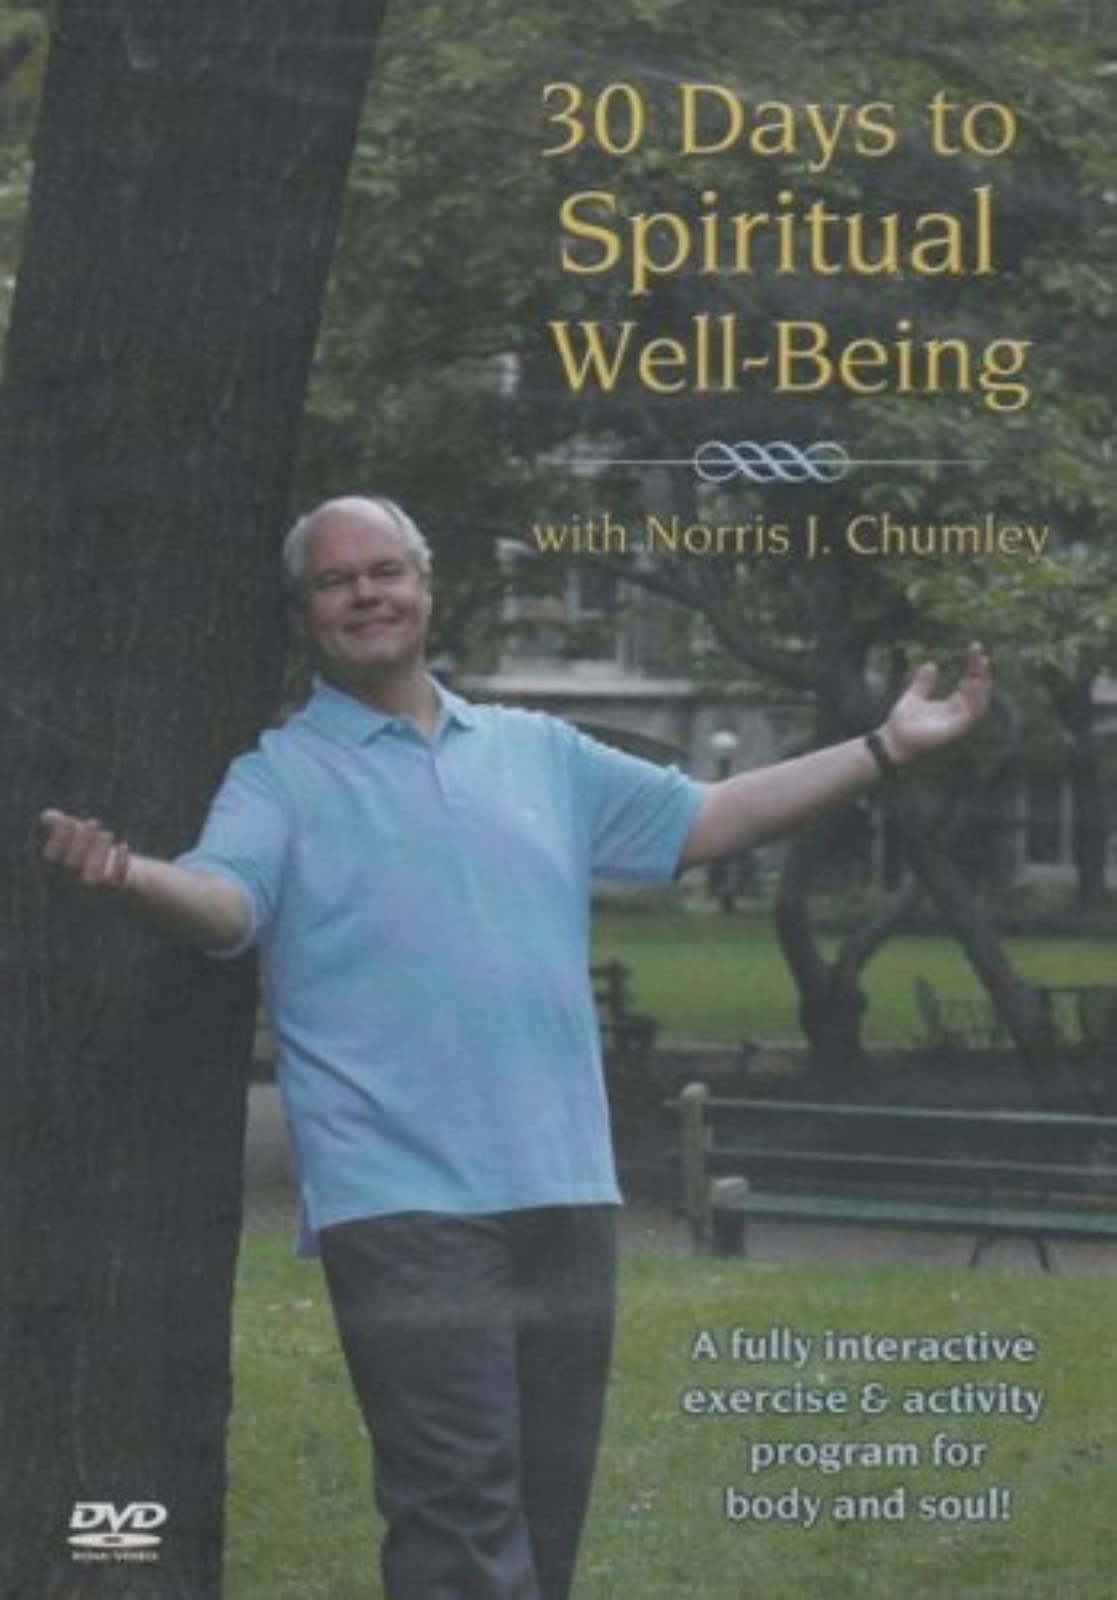 30 Days To Spiritual Well-Being On DVD With Norris Chumley